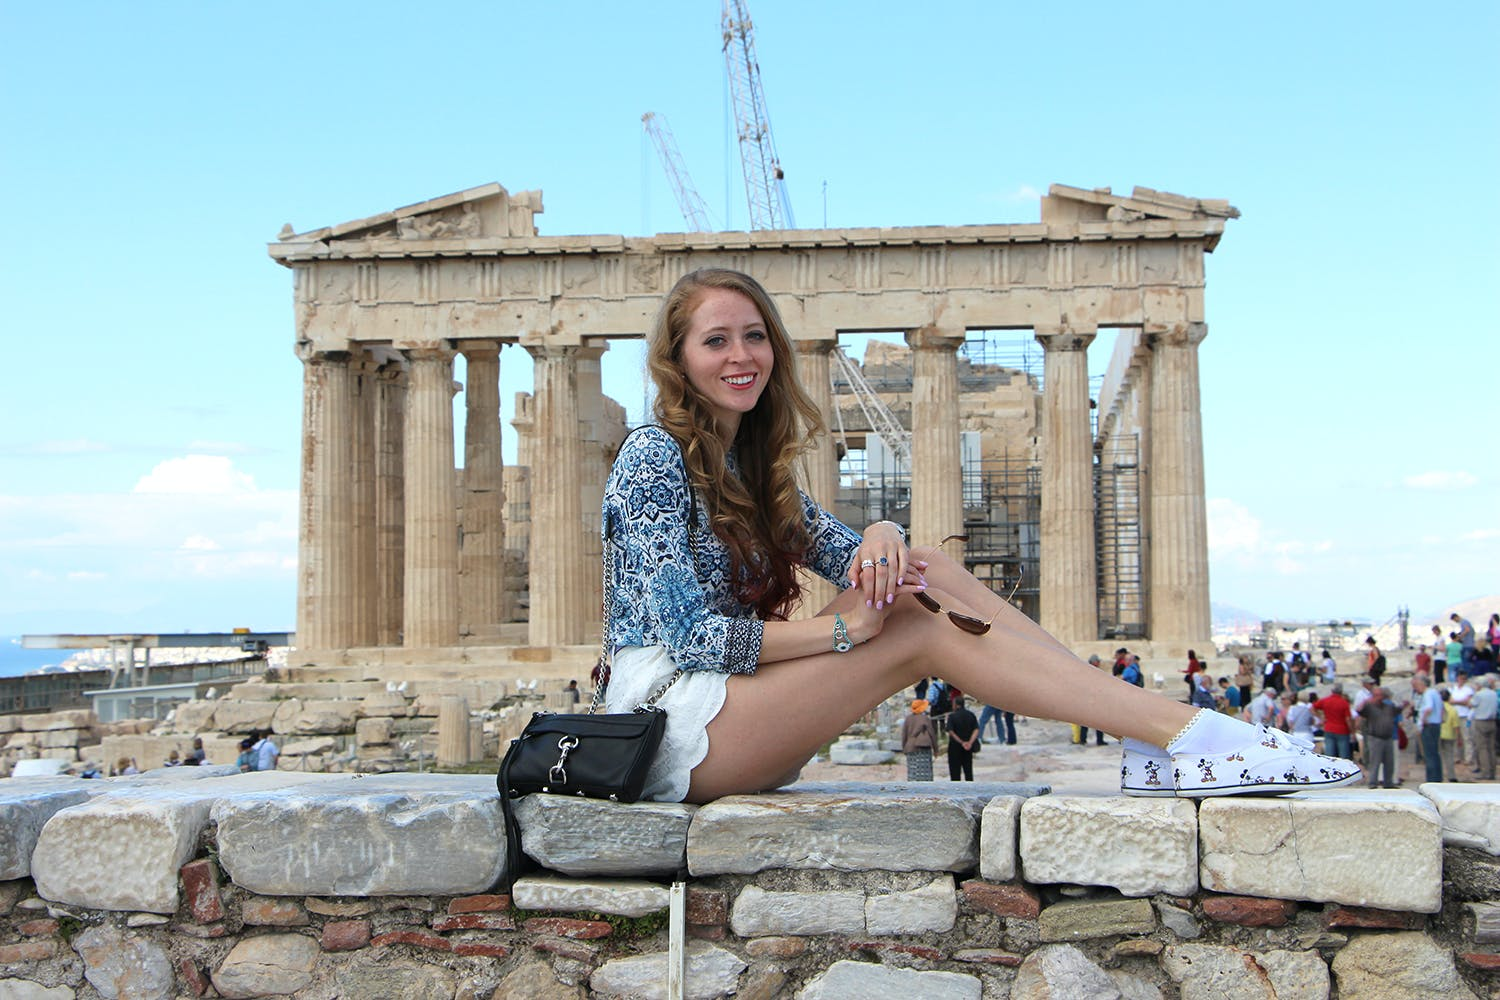 Greece Travel Diary: Acropolis of Athens